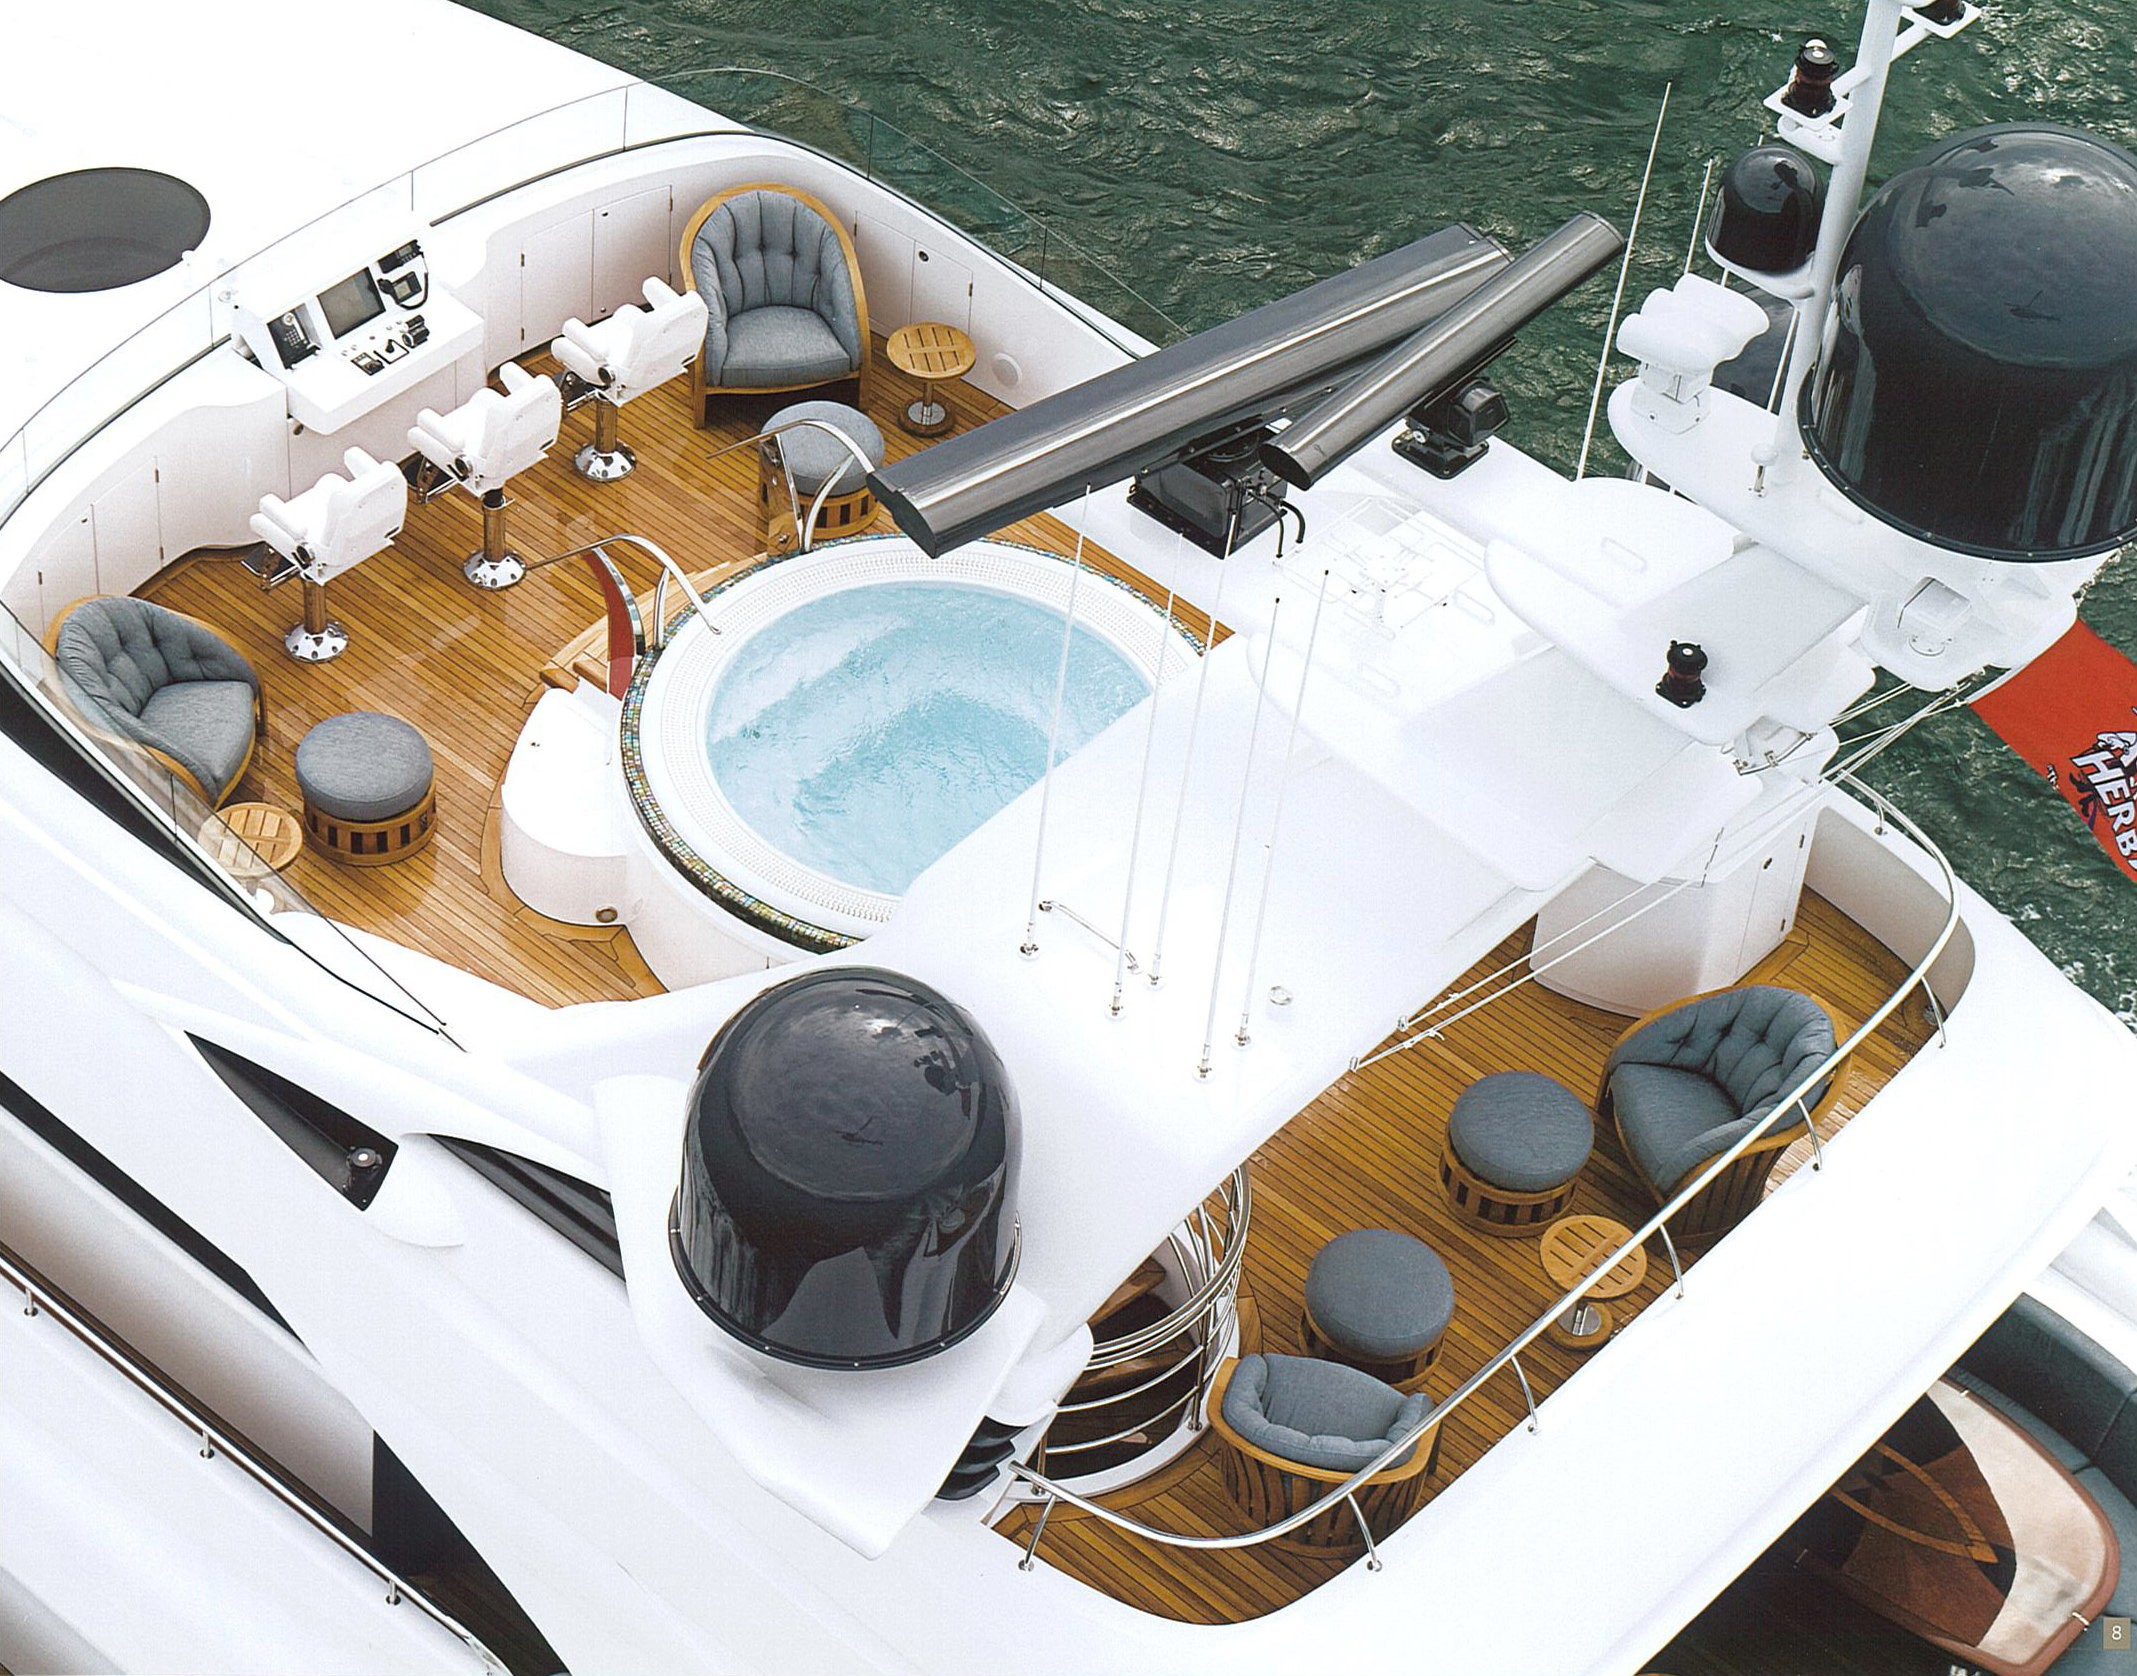 Jacuzzi Pool: Yacht USHER's From Above Image